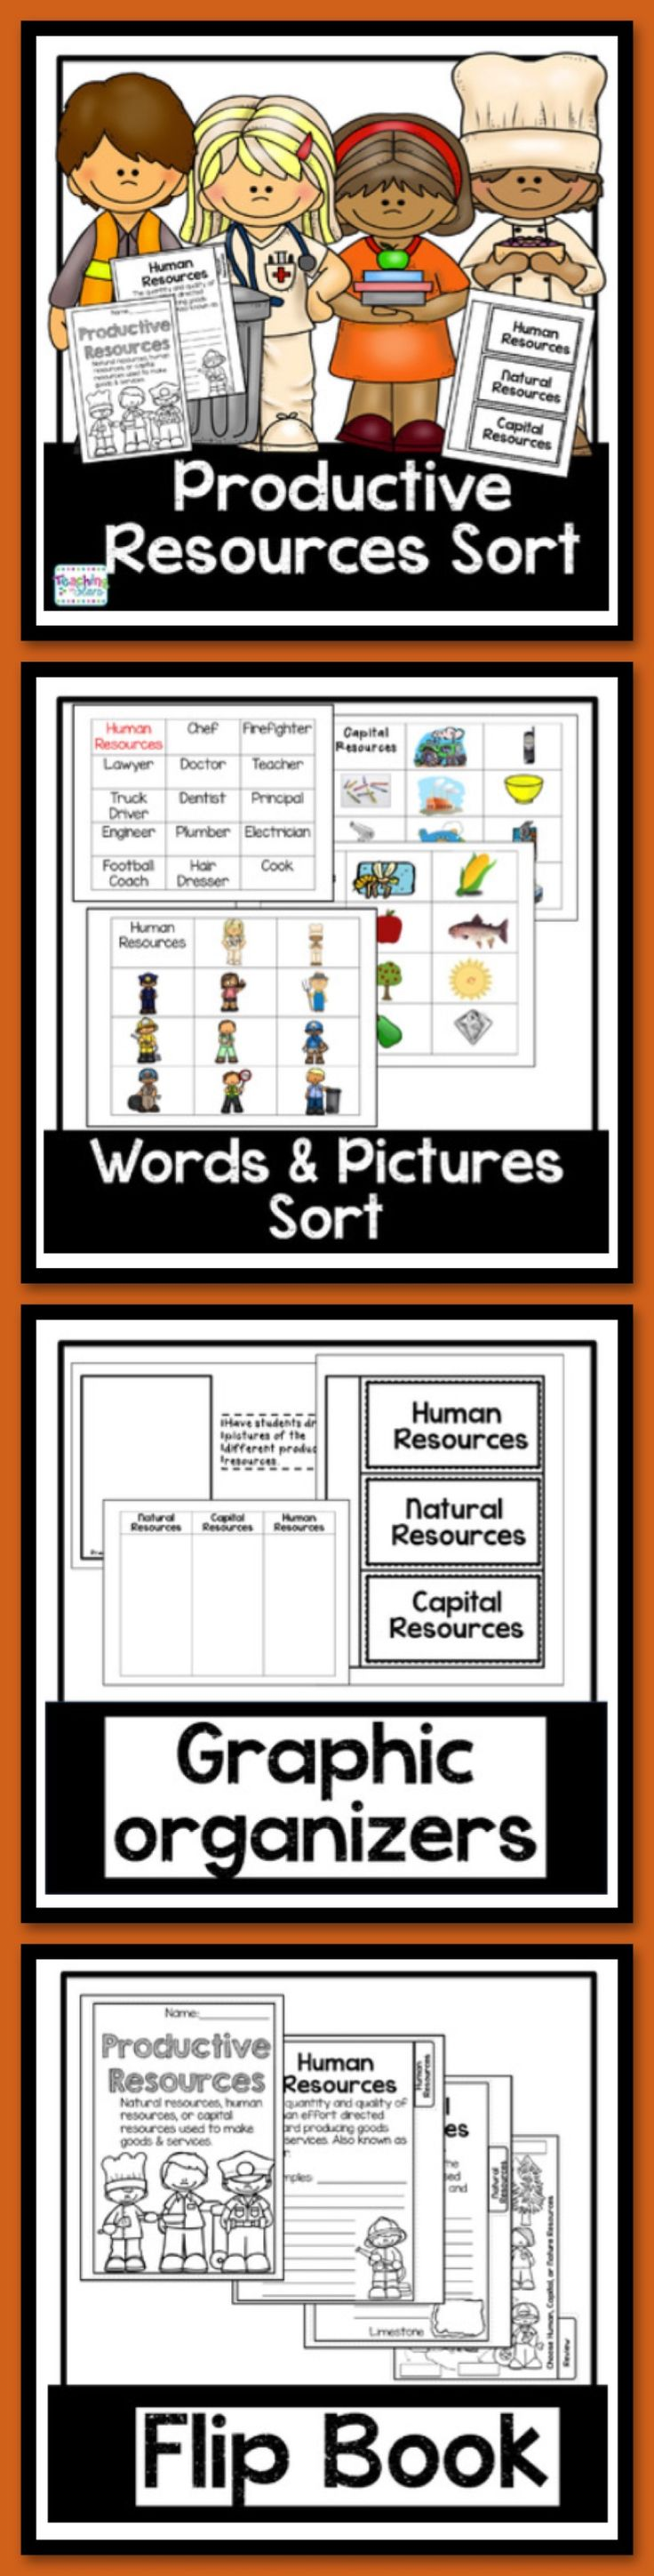 Economics: Productive Resources Sort will help assess students' knowledge of human resources, capital resources, and natural resources. Students will have the opportunity to sort by words or pictures the different types of productive resources. Students will also have a graphic organizer to collect the types of productive resources.